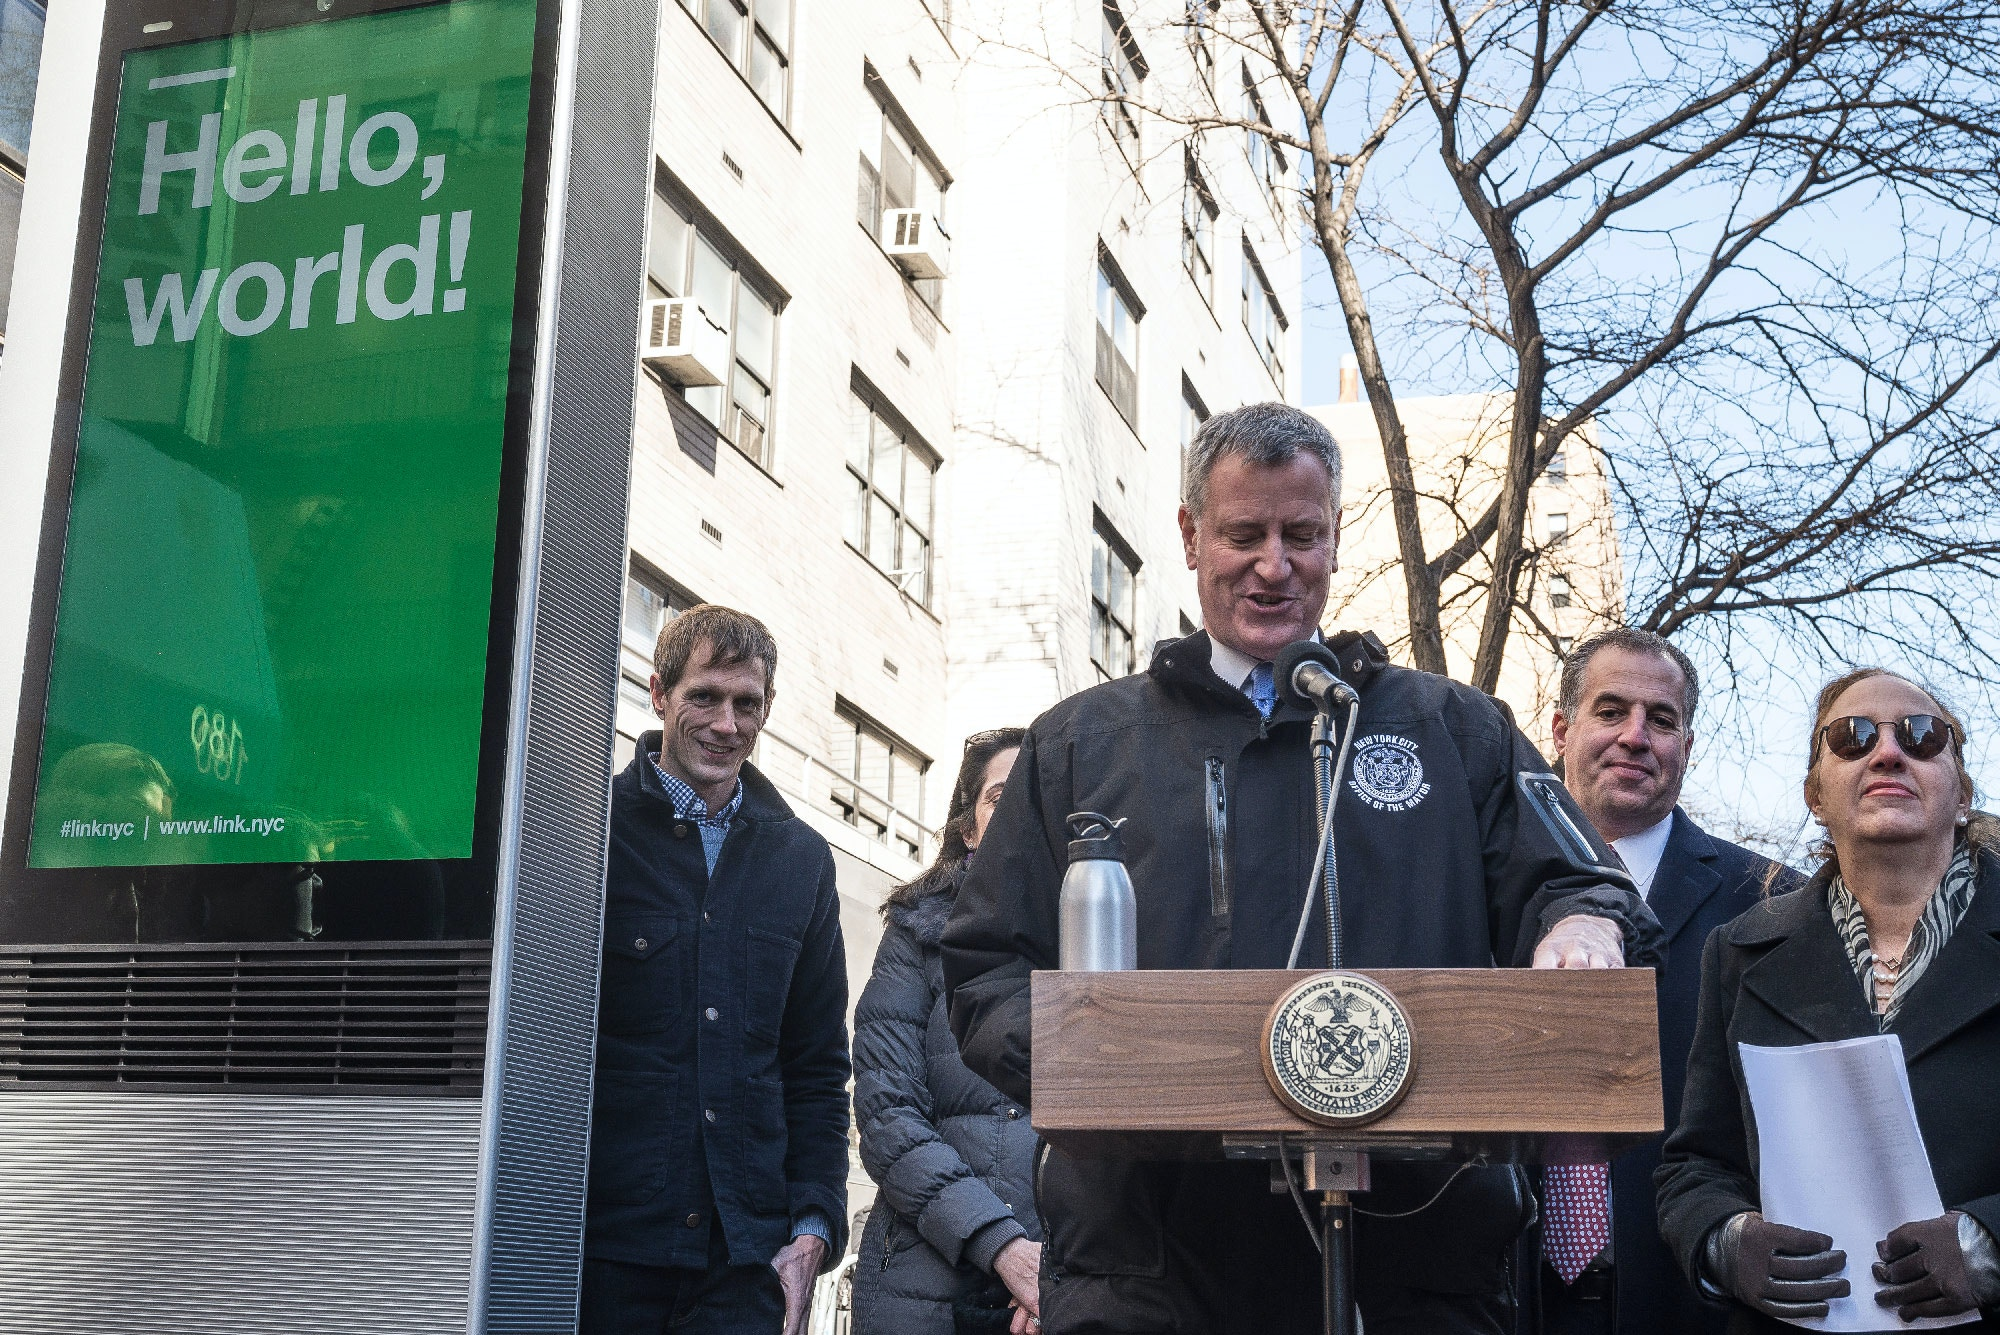 EAST 16TH STREET AT THIRD AVENUE, NEW YORK, NY, UNSPECIFIED - 2016/02/18: Mayor de Blasio speaks at the press conference next to the first of the kiosks in its beta form. Mayor Bill de Blasio announced the launch of the LinkNYC public WiFi and communications network that will be implemented throughout New York City with the unveiling of the first of 7500 terminal kiosks on Third Avenue at East 16th Street; and responded to questions from members of the press regarding the data that will be collected by the system, privacy concerns, and the potential use of the kiosks as surveillance devices. (Photo by Albin Lohr-Jones/Pacific Press/LightRocket via Getty Images)